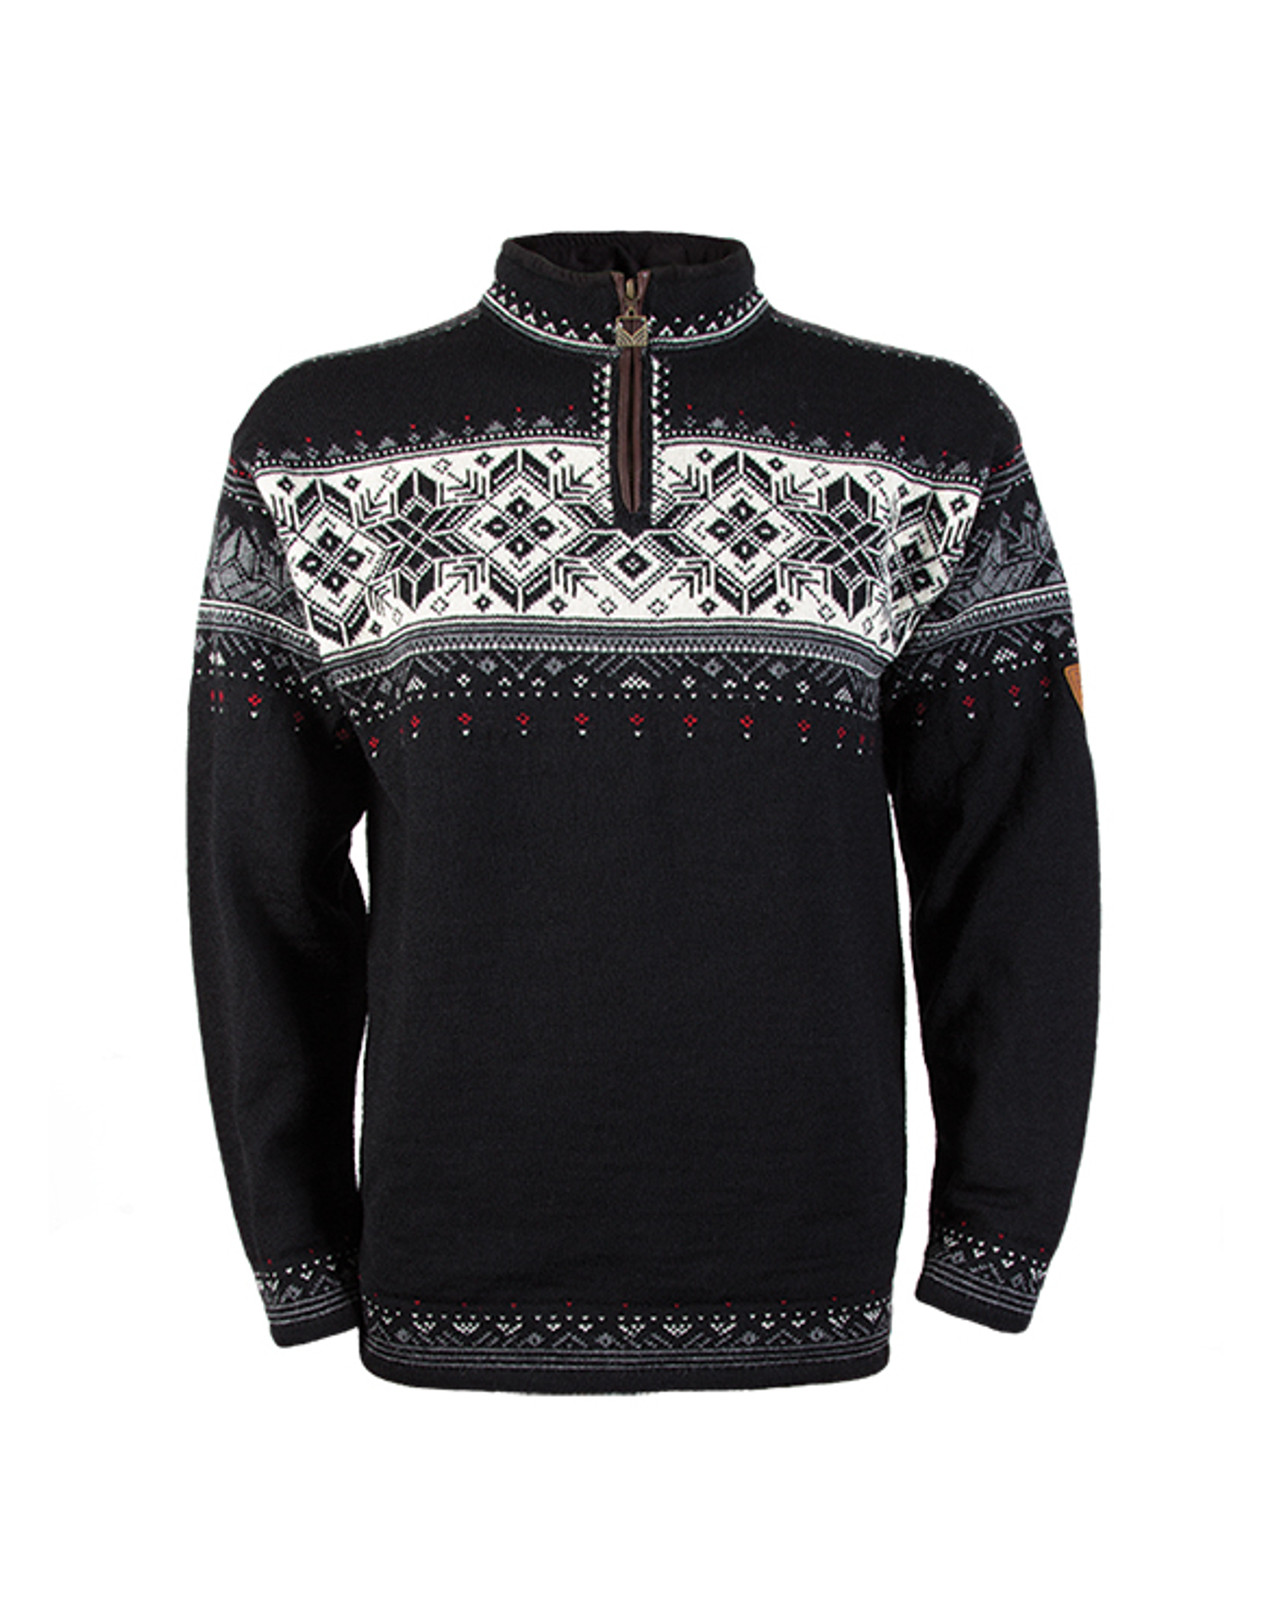 Dale of Norway, Blyfjell Sweater, Unisex, in Black/Off White/Smoke/Raspberry, 91291-F